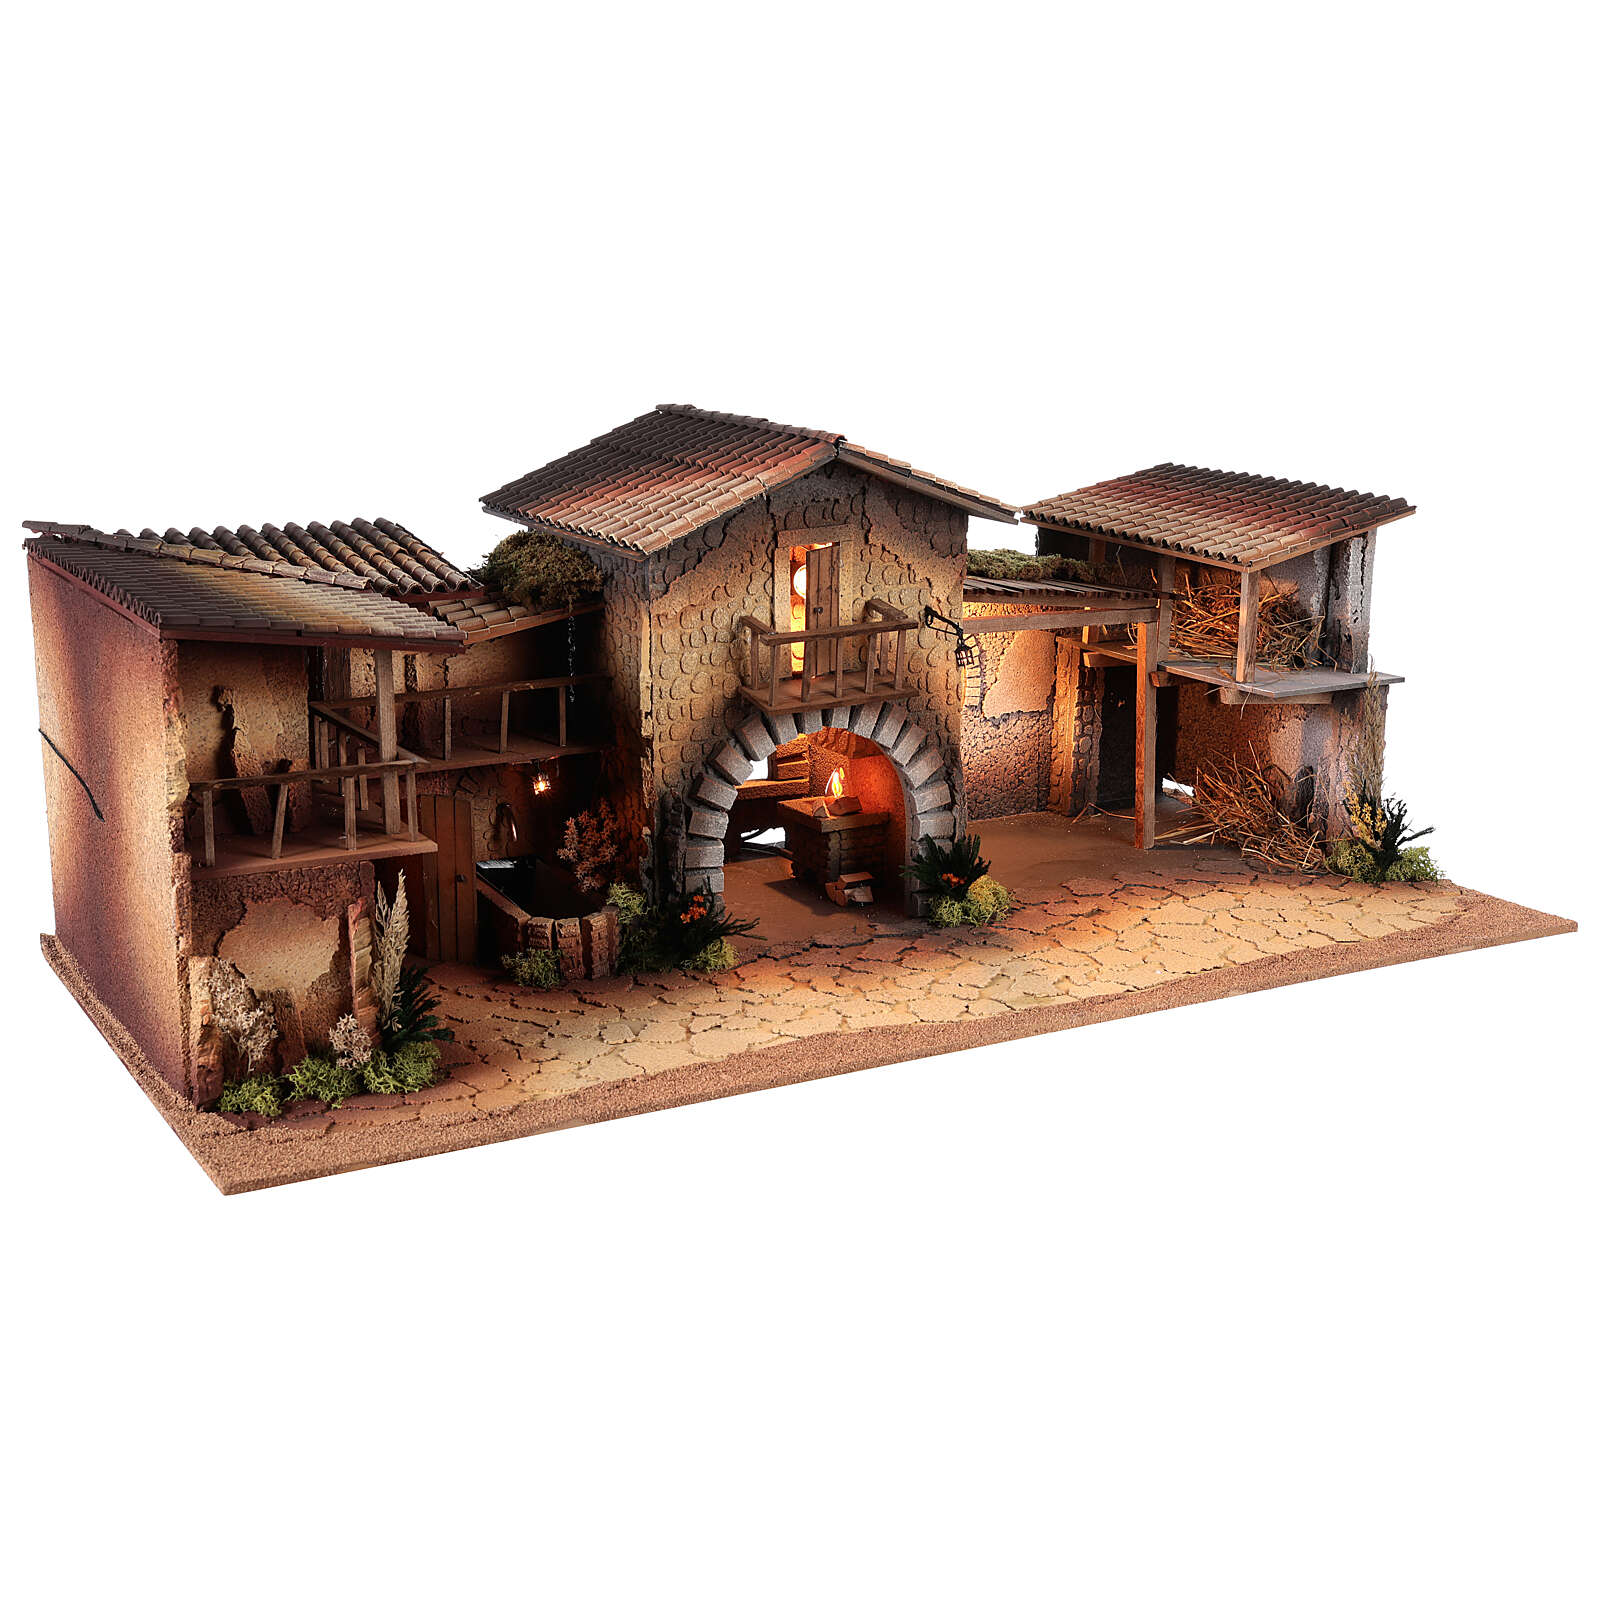 Nativity with lights and working fountain 40x95x45 cm, for 12 cm statues 4